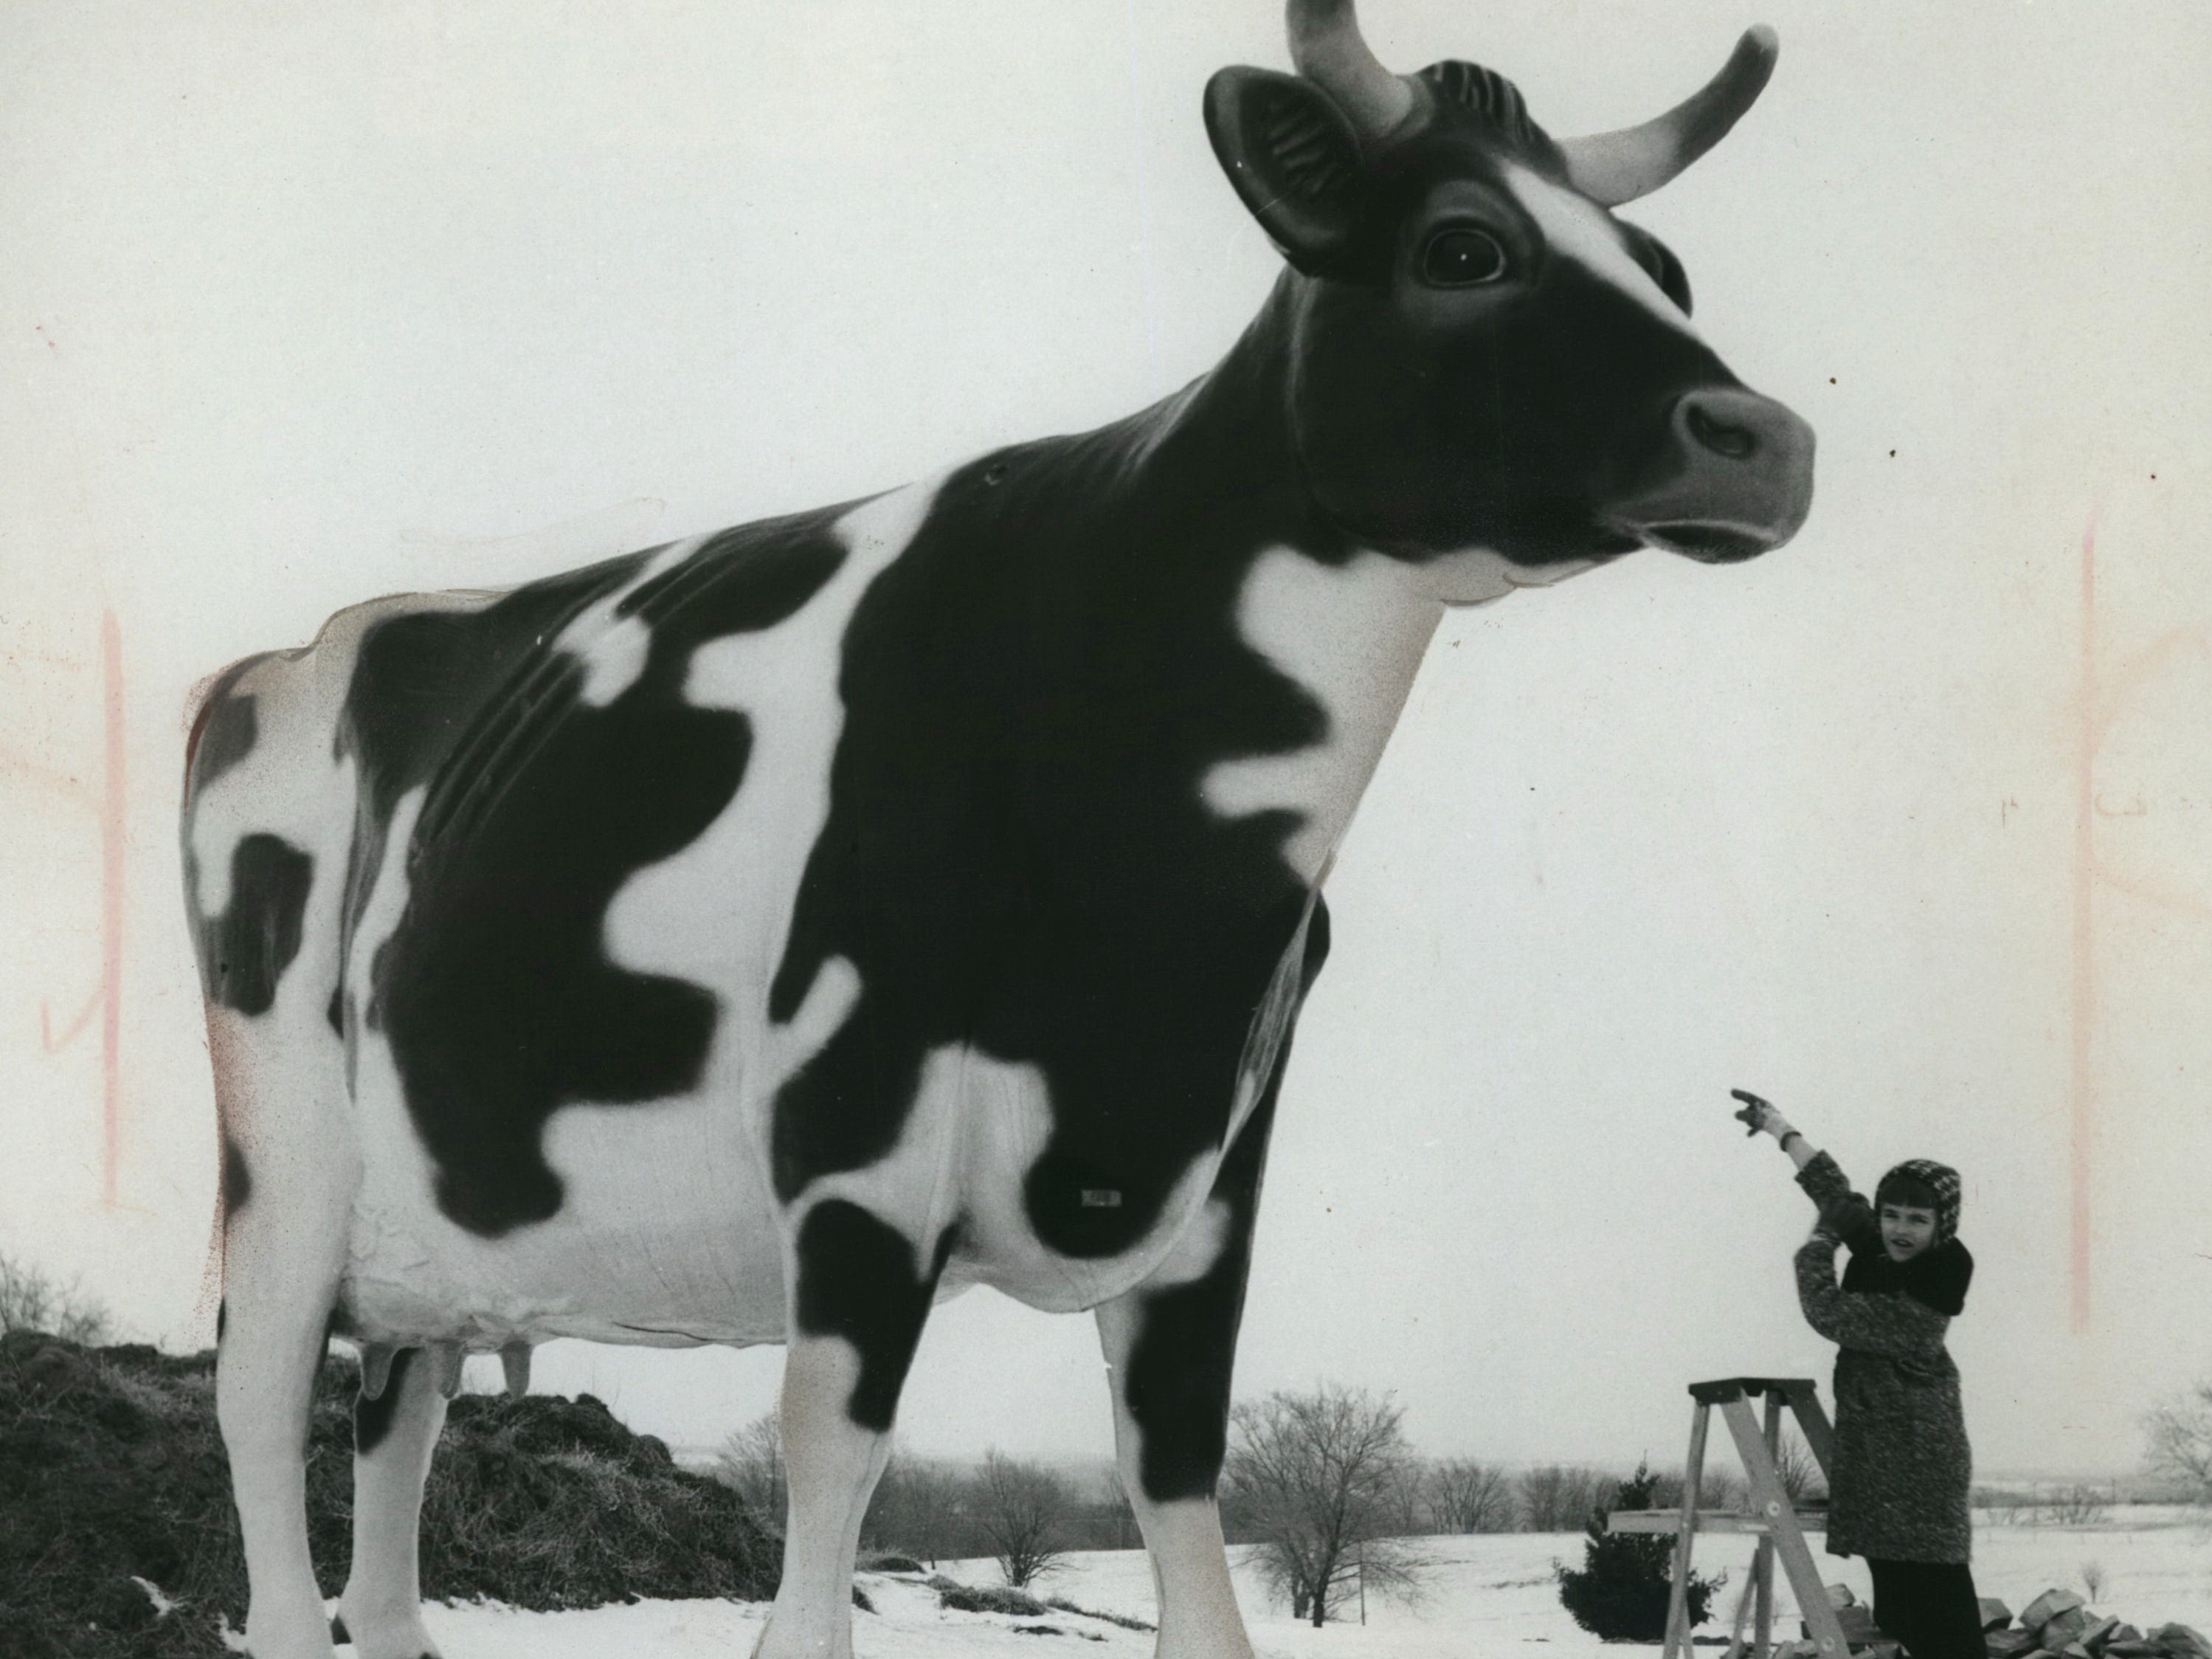 """In 1967: Jody Hartl of Loyal (Clark County) pointed to the world's largest cow, which she named """"Chatty Belle."""" Jody received 100 pounds of butter as a prize in the contest to name the 16-foot  symbol of Wisconsin's dairy industry."""